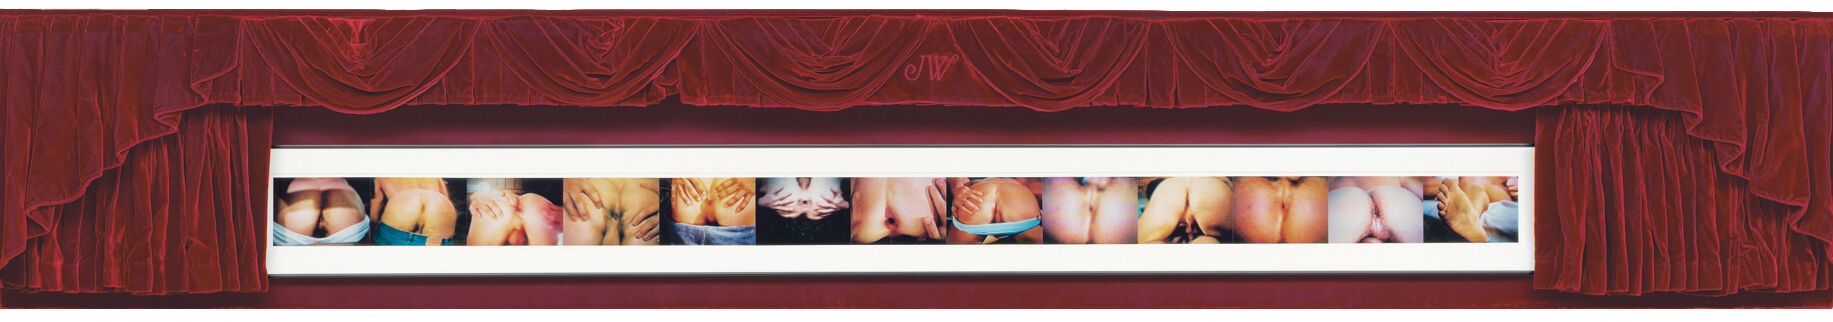 John Waters, Twelve Assholes and a Dirty Foot, 1996. © John Waters. Courtesy of The Baltimore Museum of Art.